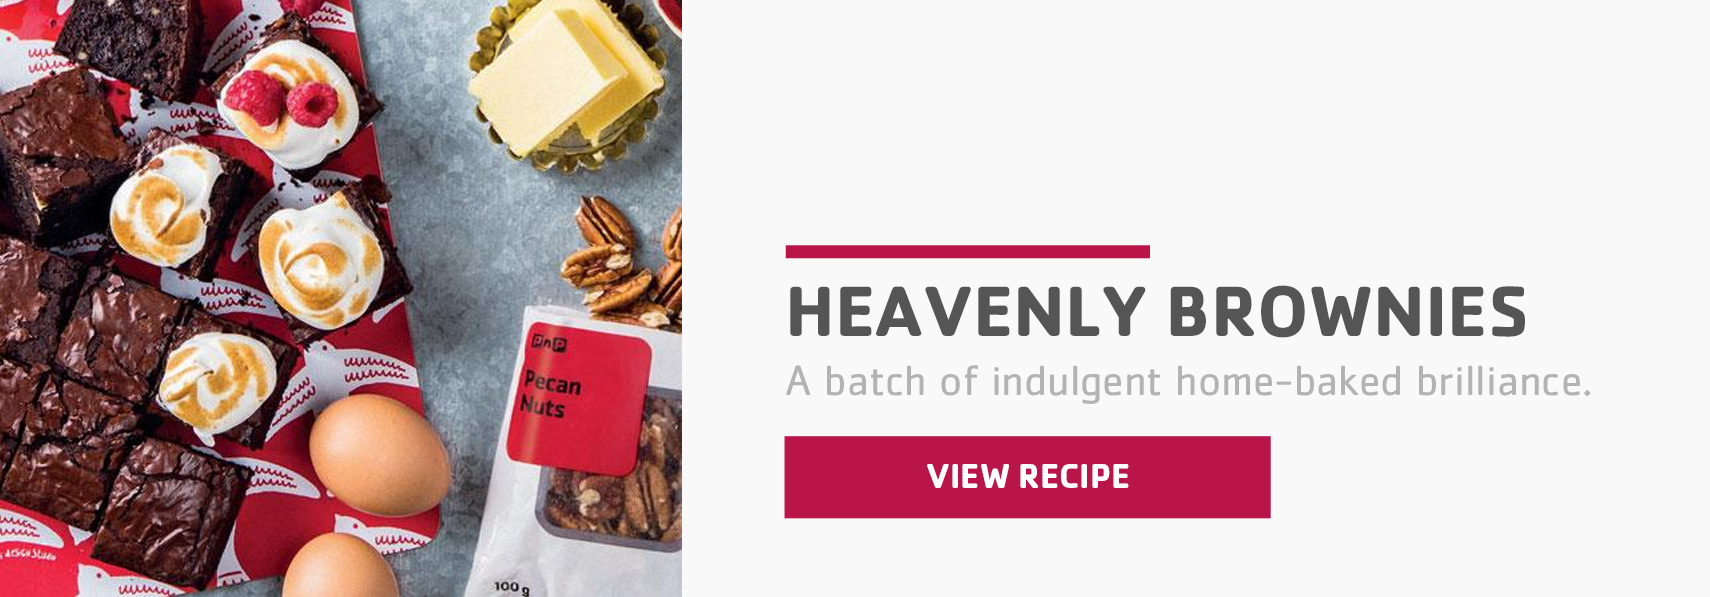 heavenly-brownies.jpg